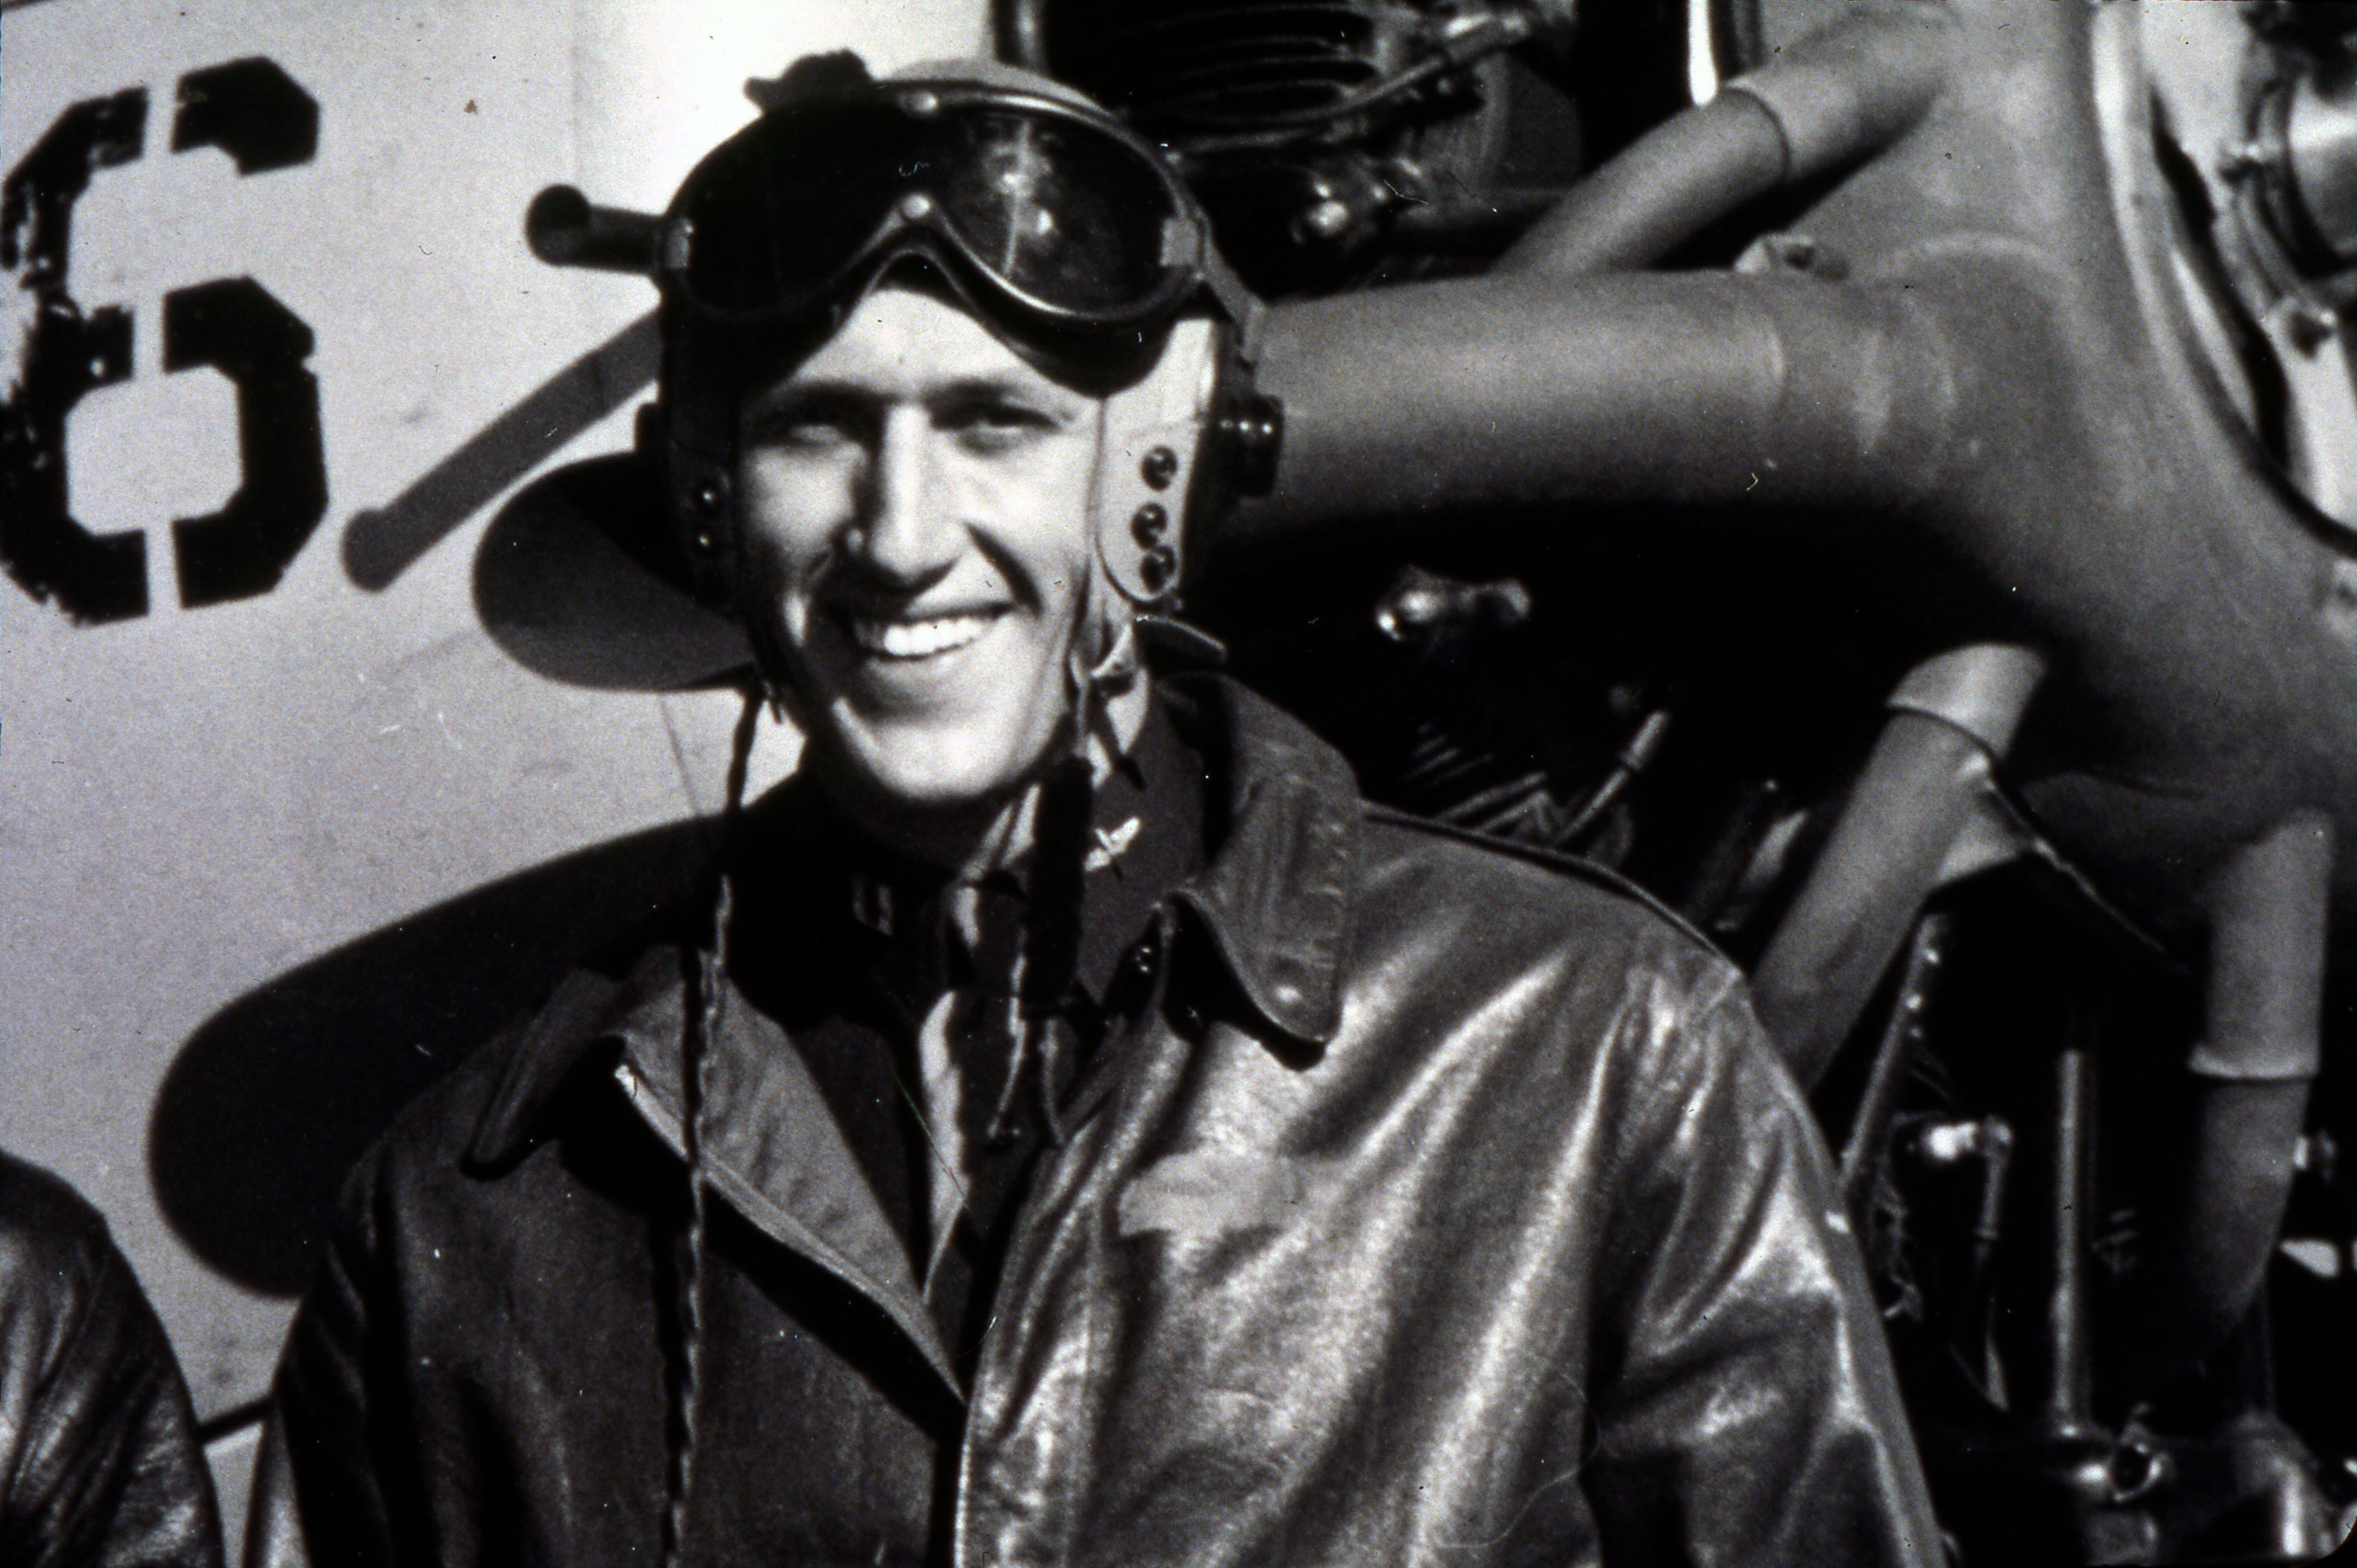 photo of Martin Bischoff as a pilot